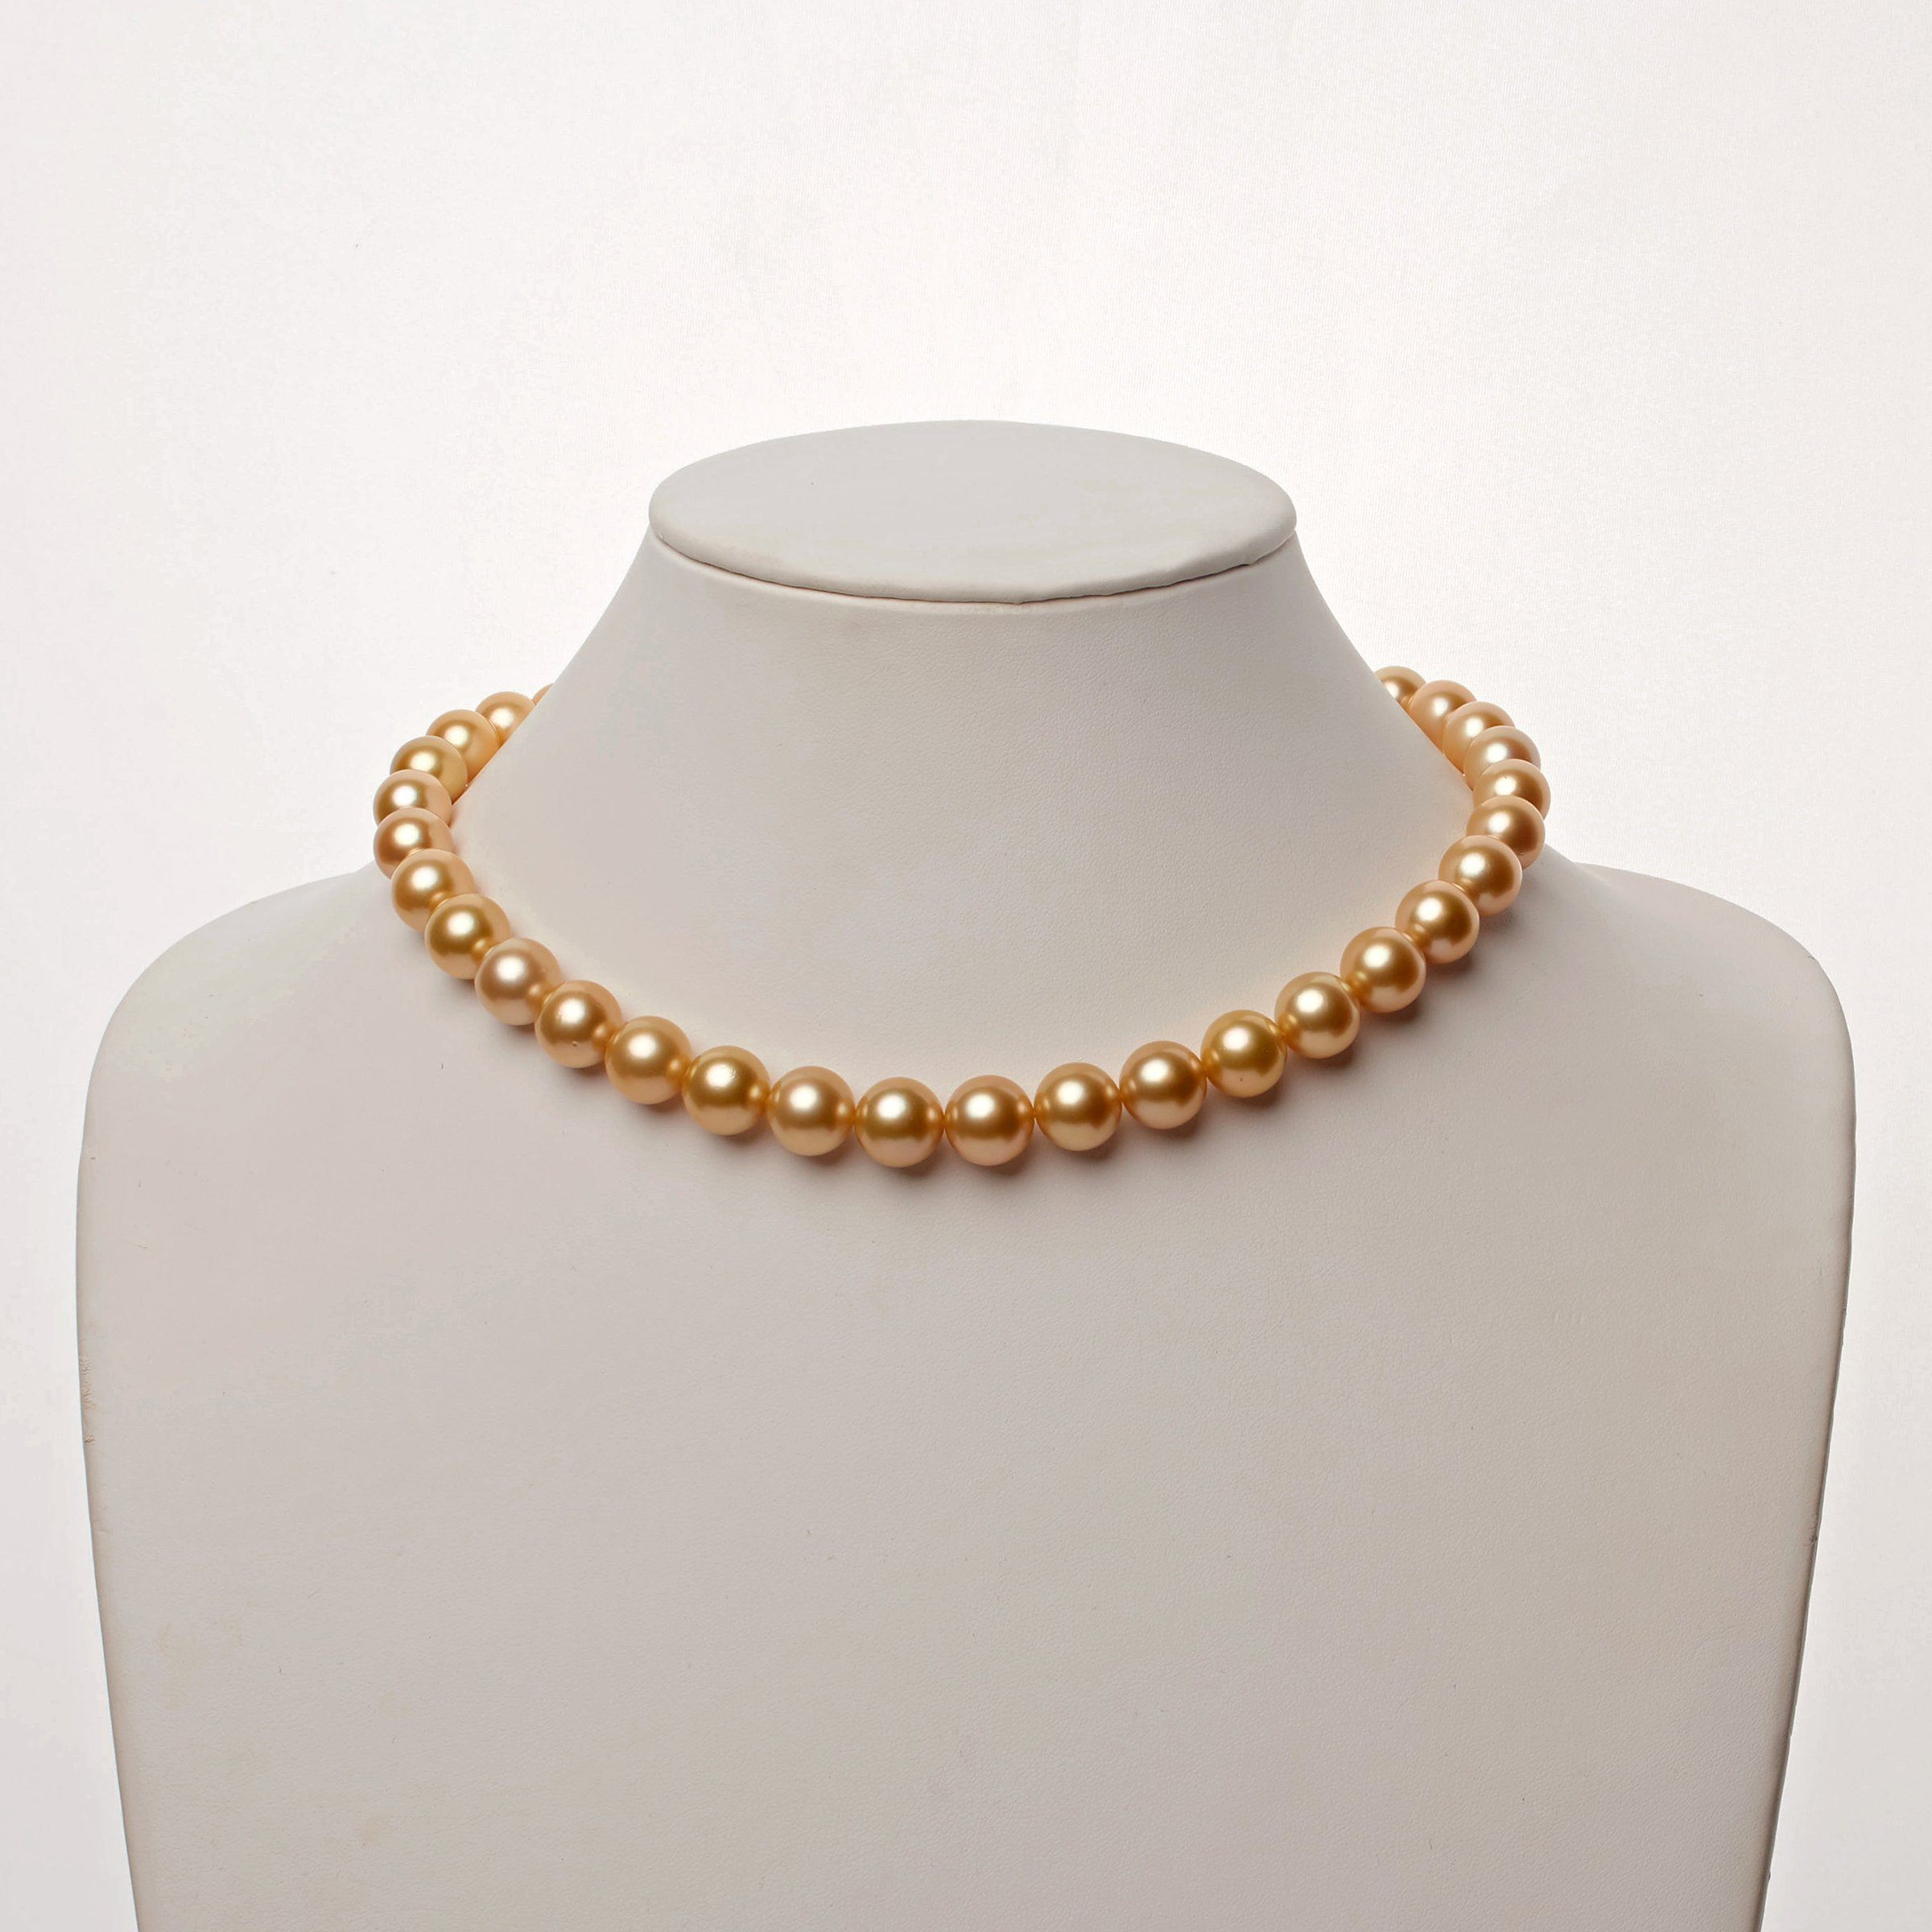 10.0-12.0 mm AA+/AAA Golden South Sea Round Pearl Necklace